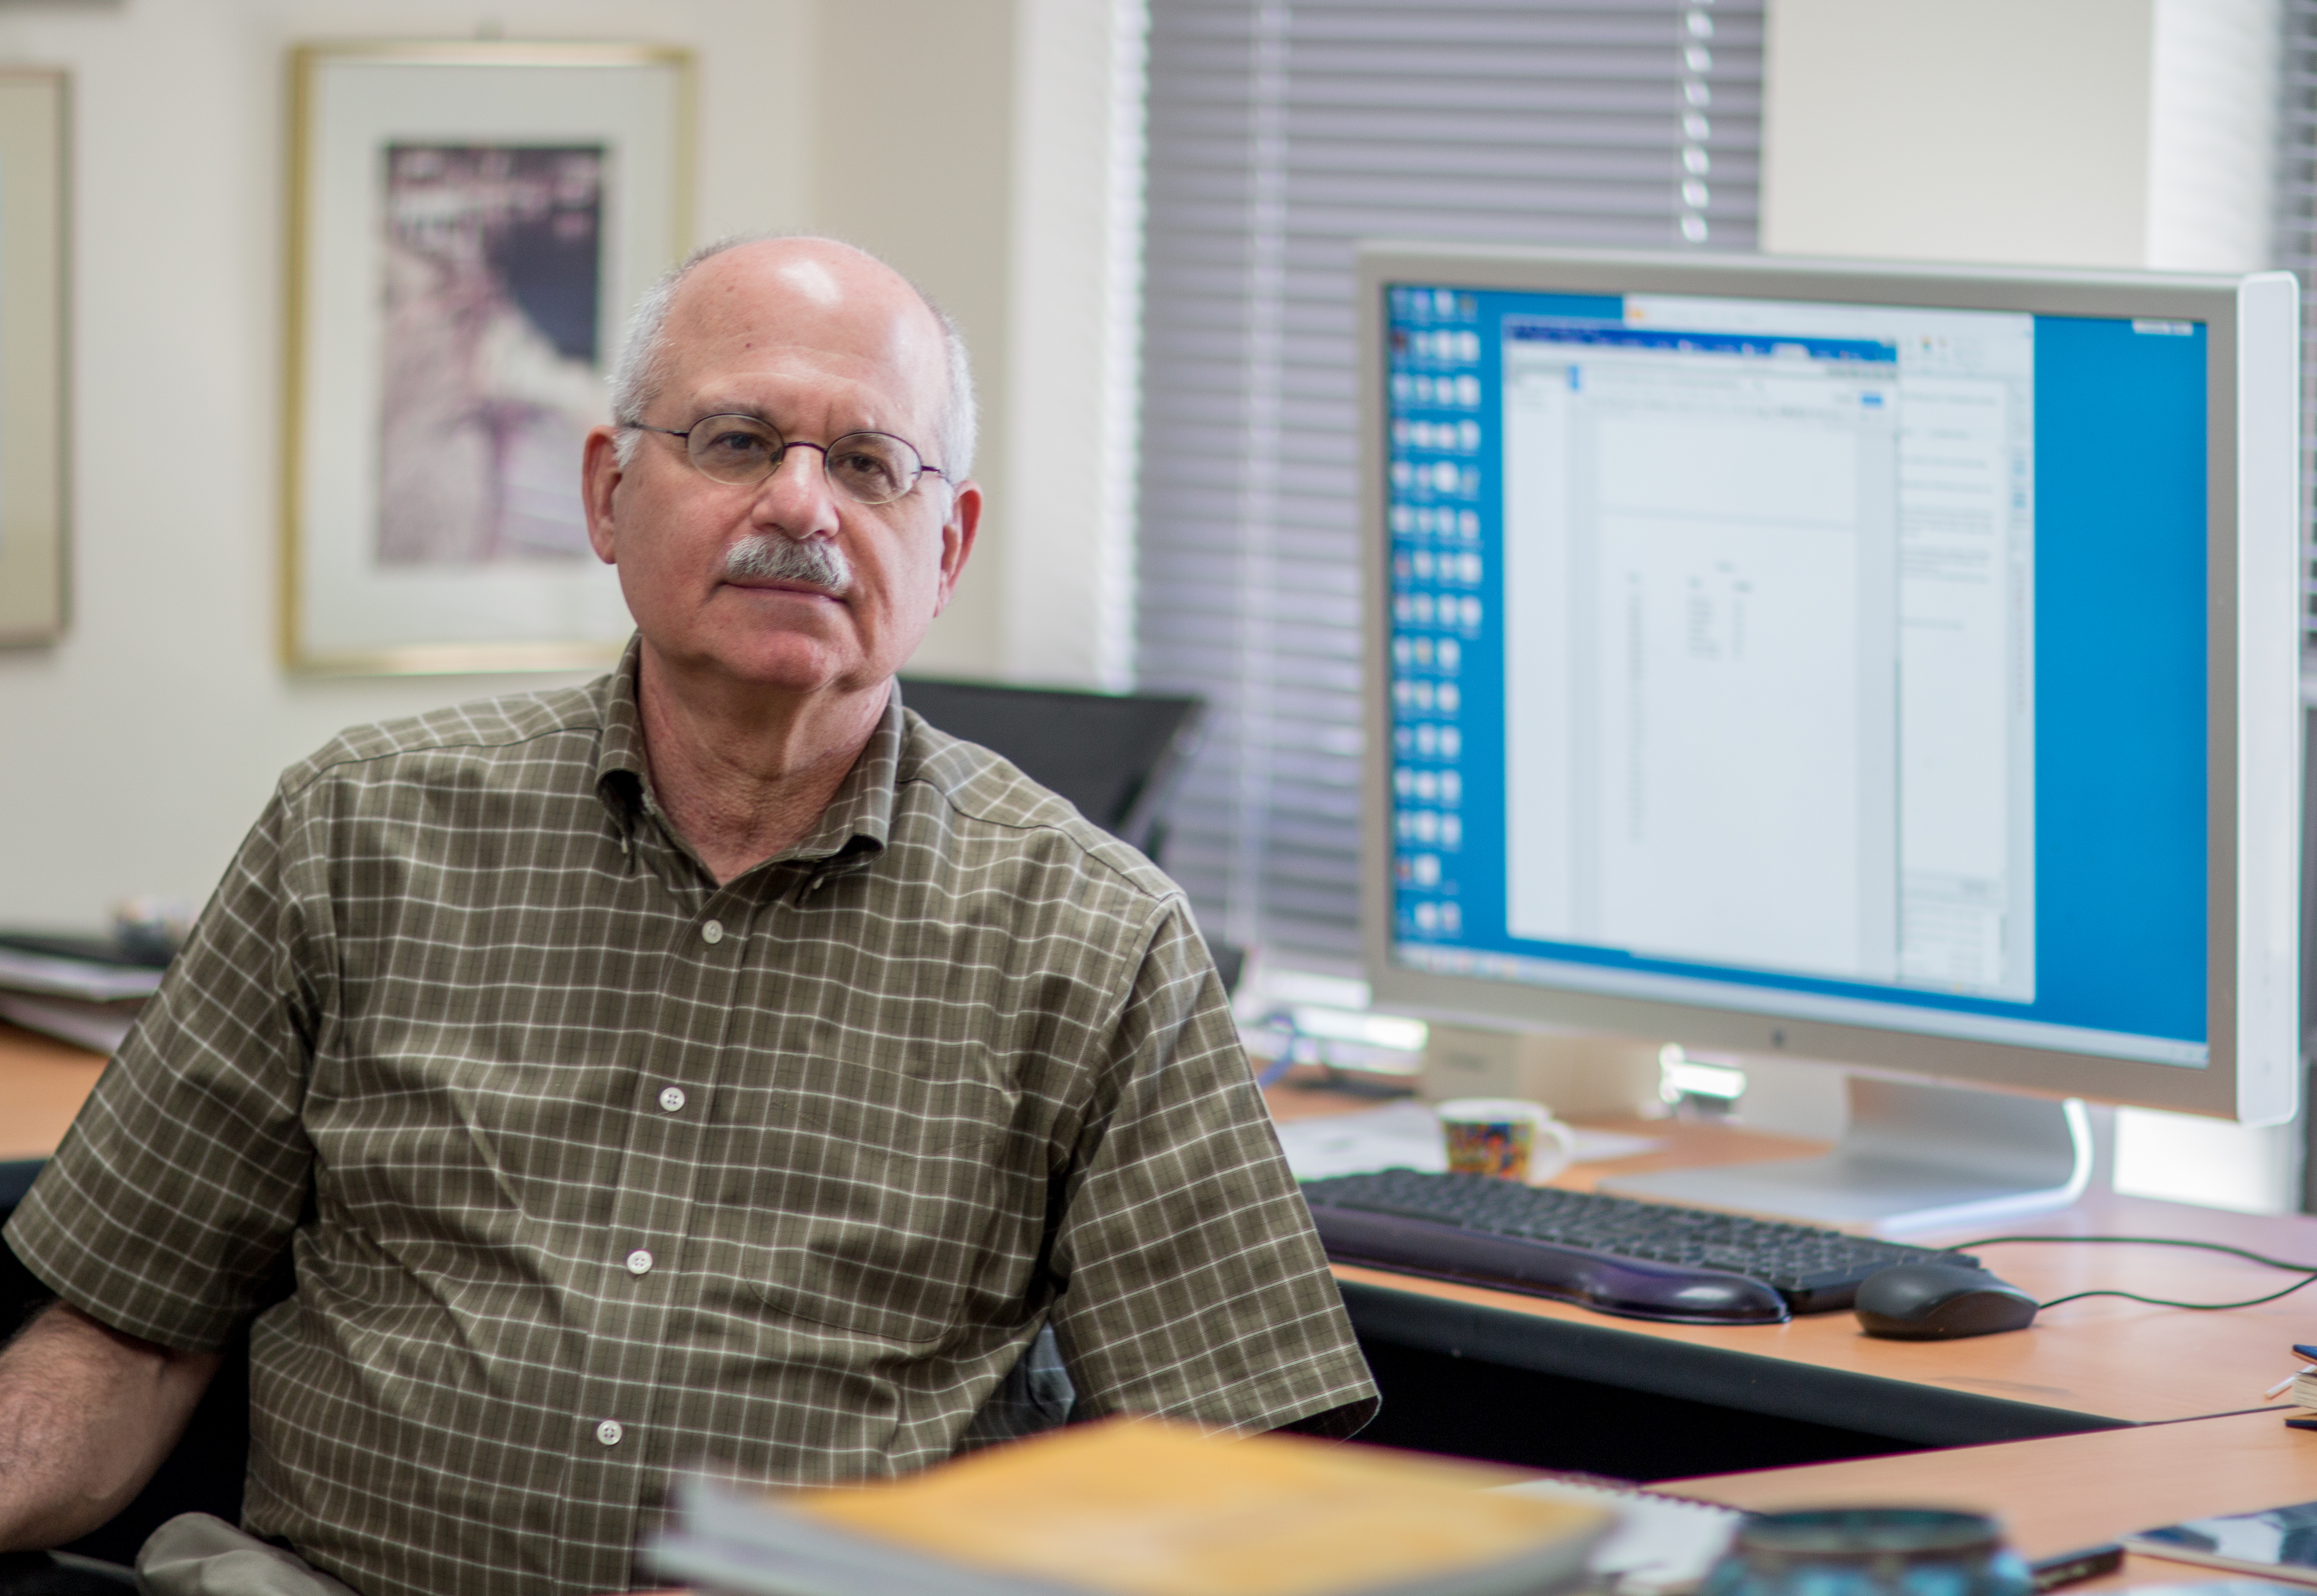 Descriptive Image for Larry Davis to serve as interim chair of Computer Science Department